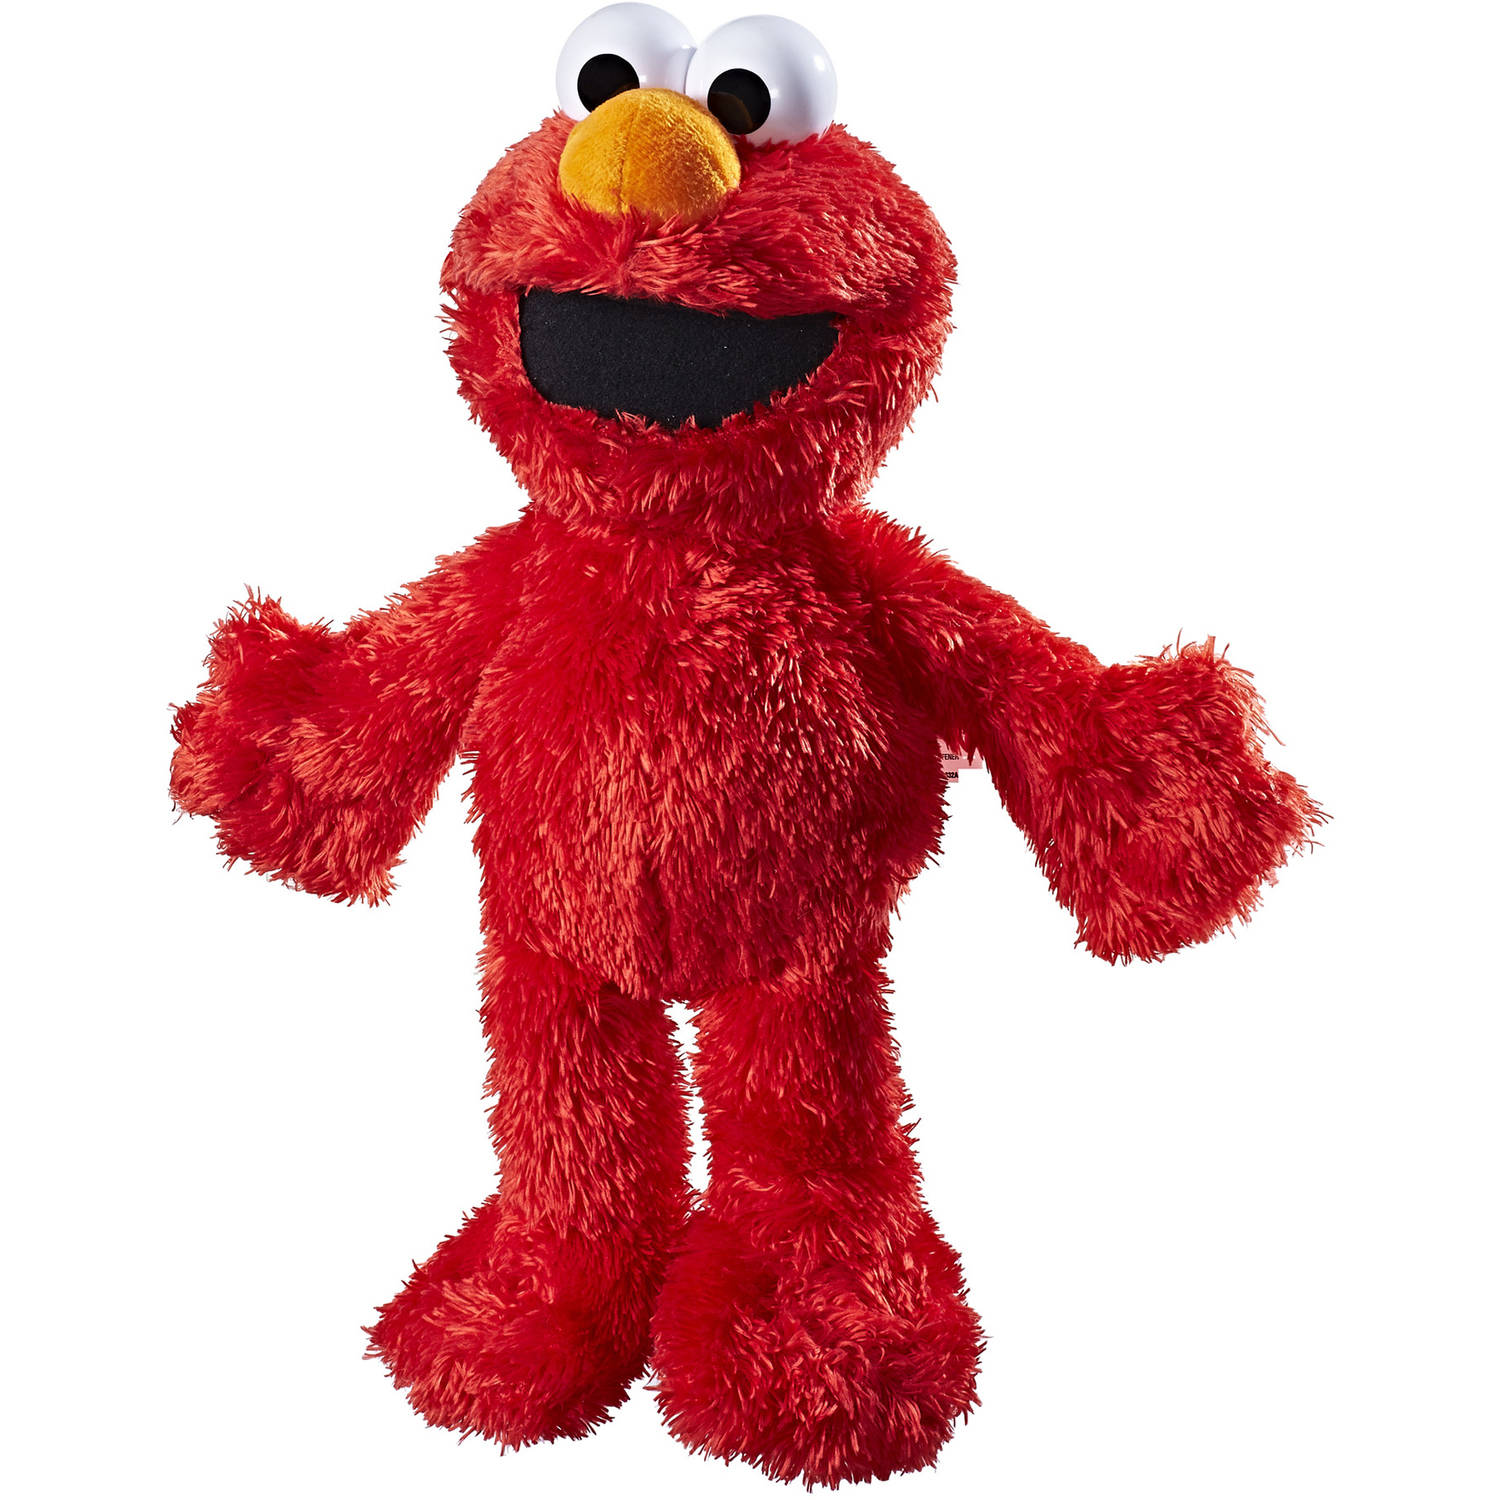 Playskool Friends Sesame Street Tickle Me Elmo, Ages 18mo and up